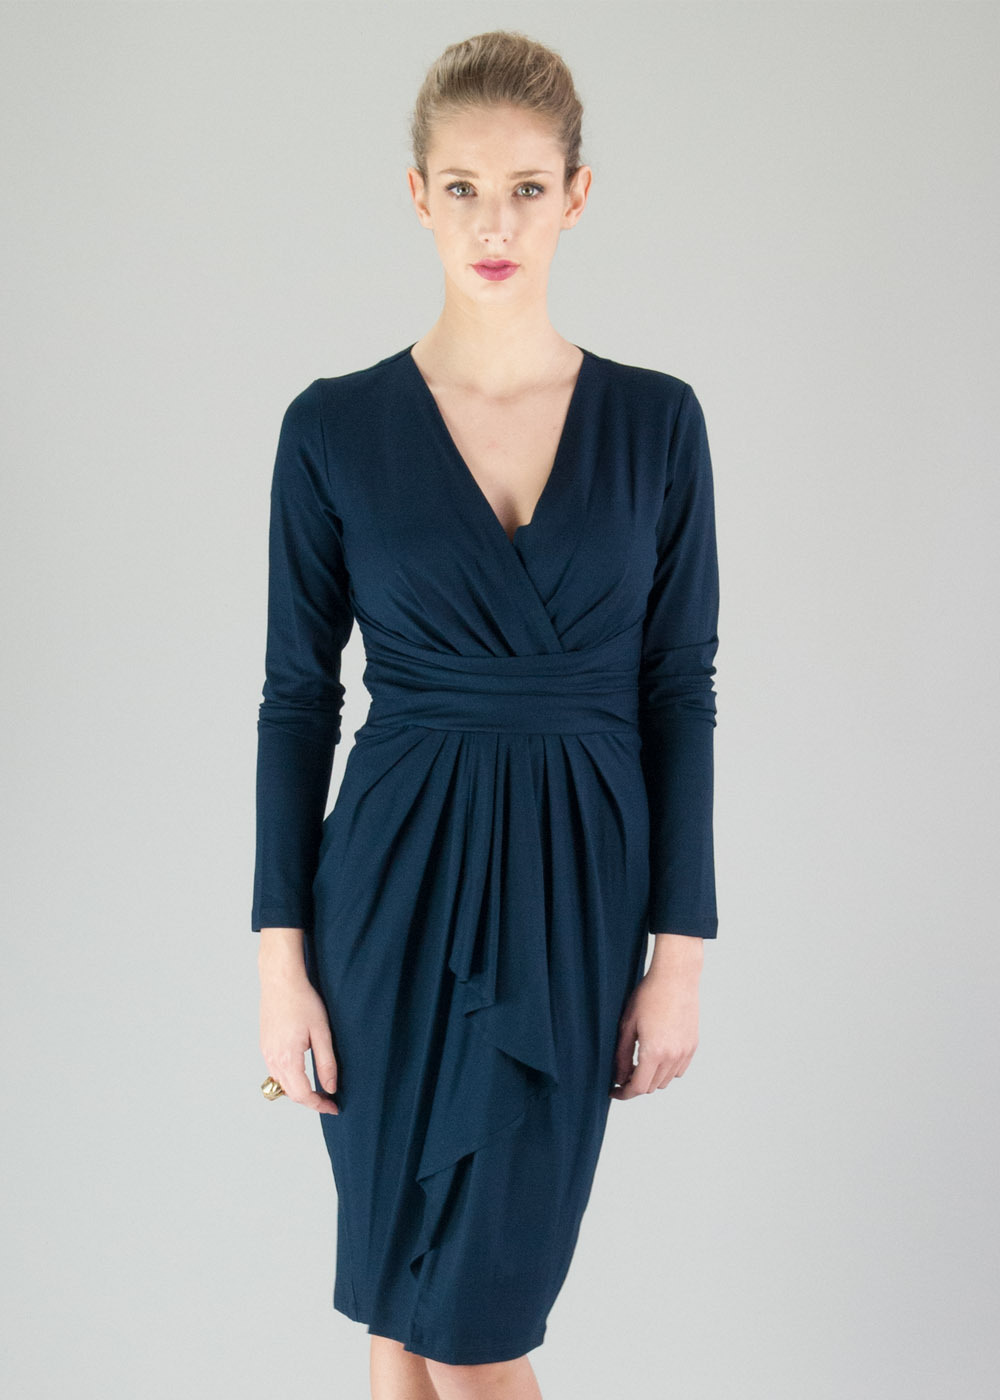 Navy Uptown Dress - style: faux wrap/wrap; length: below the knee; neckline: low v-neck; pattern: plain; waist detail: wide waistband/cummerbund; predominant colour: navy; occasions: evening, occasion; fit: body skimming; fibres: viscose/rayon - stretch; hip detail: subtle/flattering hip detail; sleeve length: long sleeve; sleeve style: standard; pattern type: fabric; texture group: jersey - stretchy/drapey; trends: broody brights; season: a/w 2013